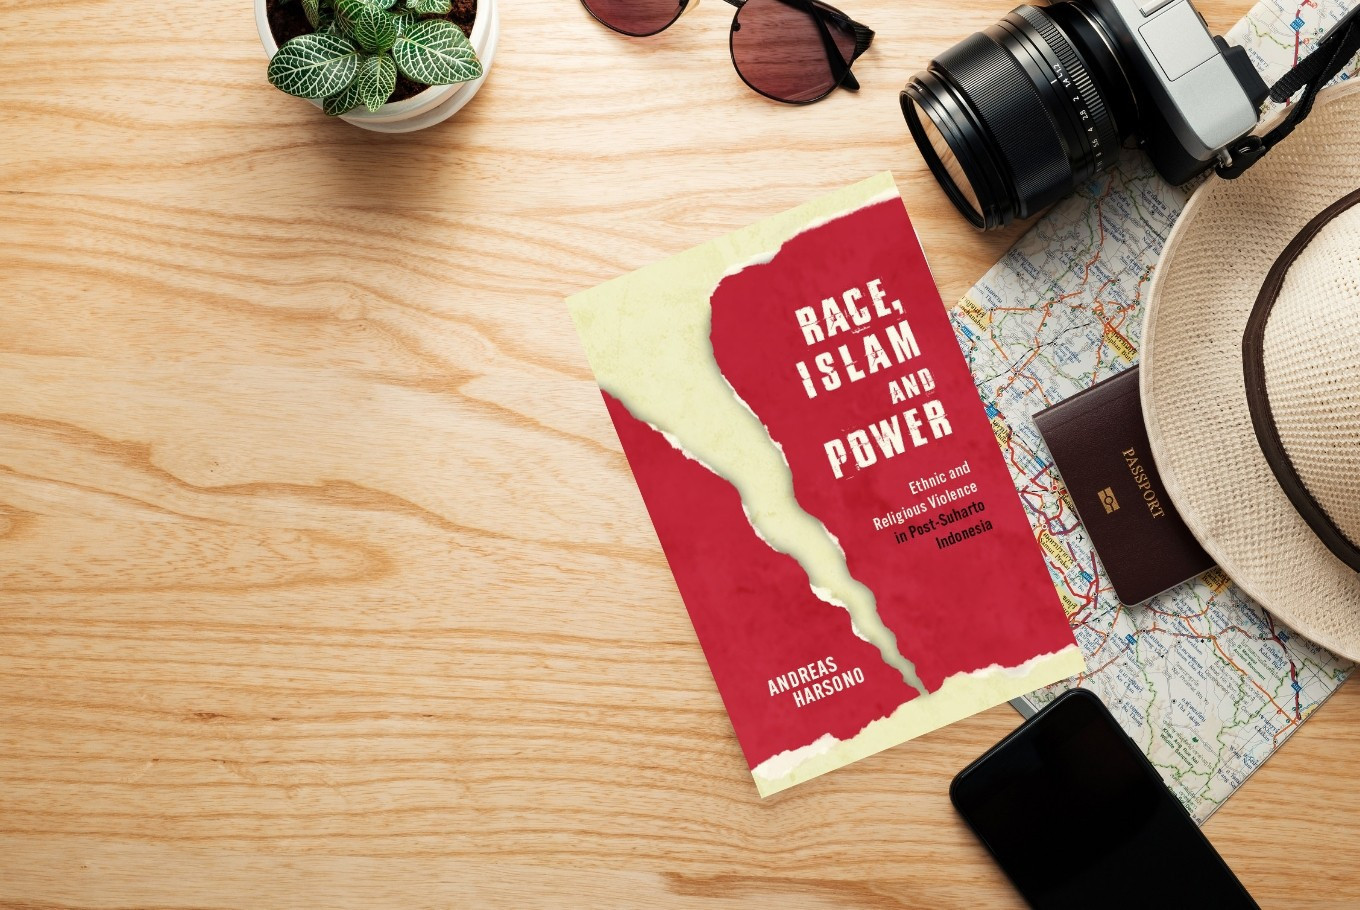 'Race, Islam and Power': A troubling tour through a pained land